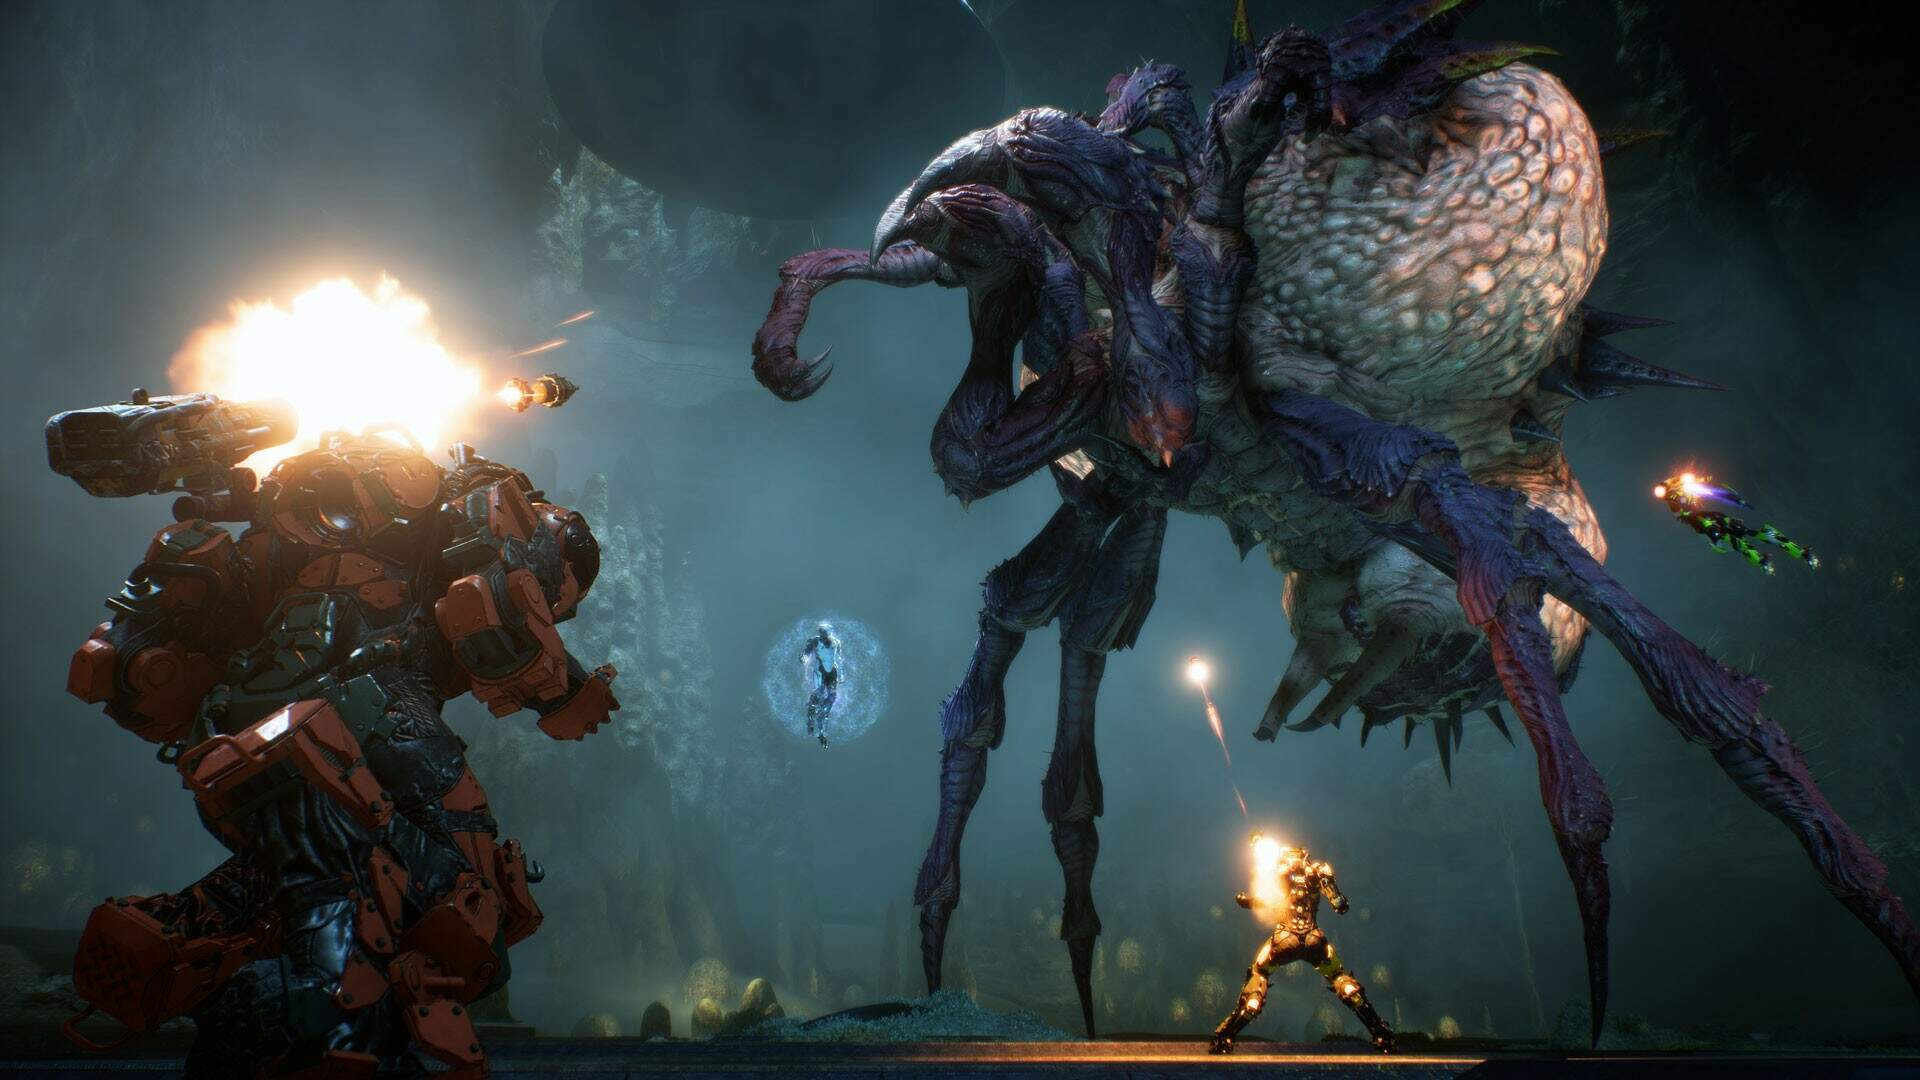 Anthem's Endgame Roadmap Appears to Tease Future Story Developments Among Other New Info